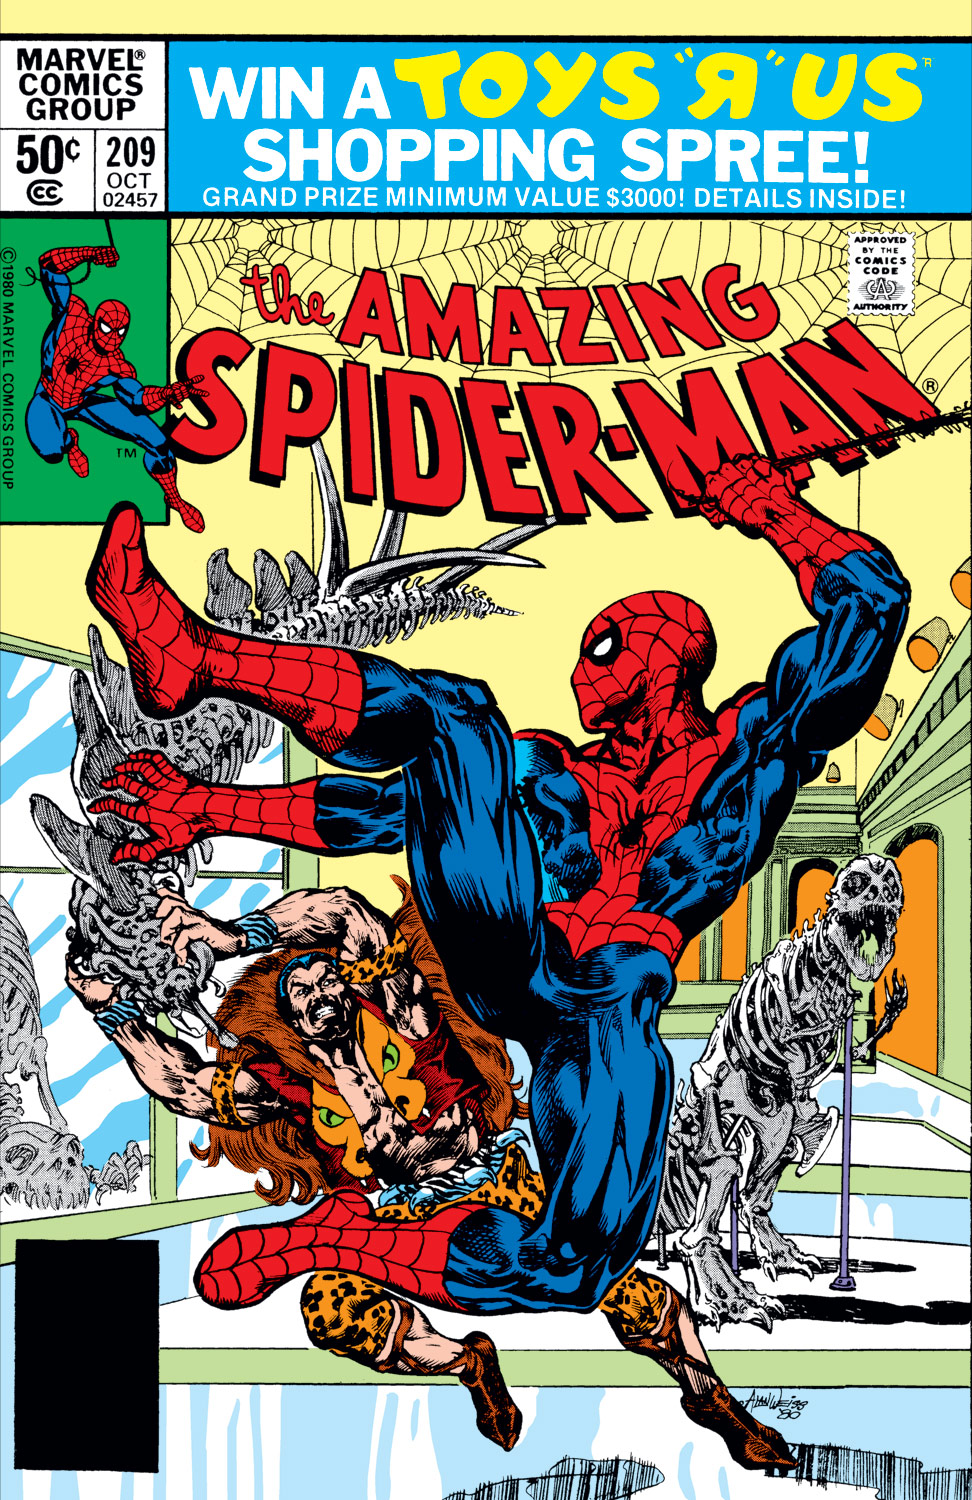 The Amazing Spider-Man (1963) #209